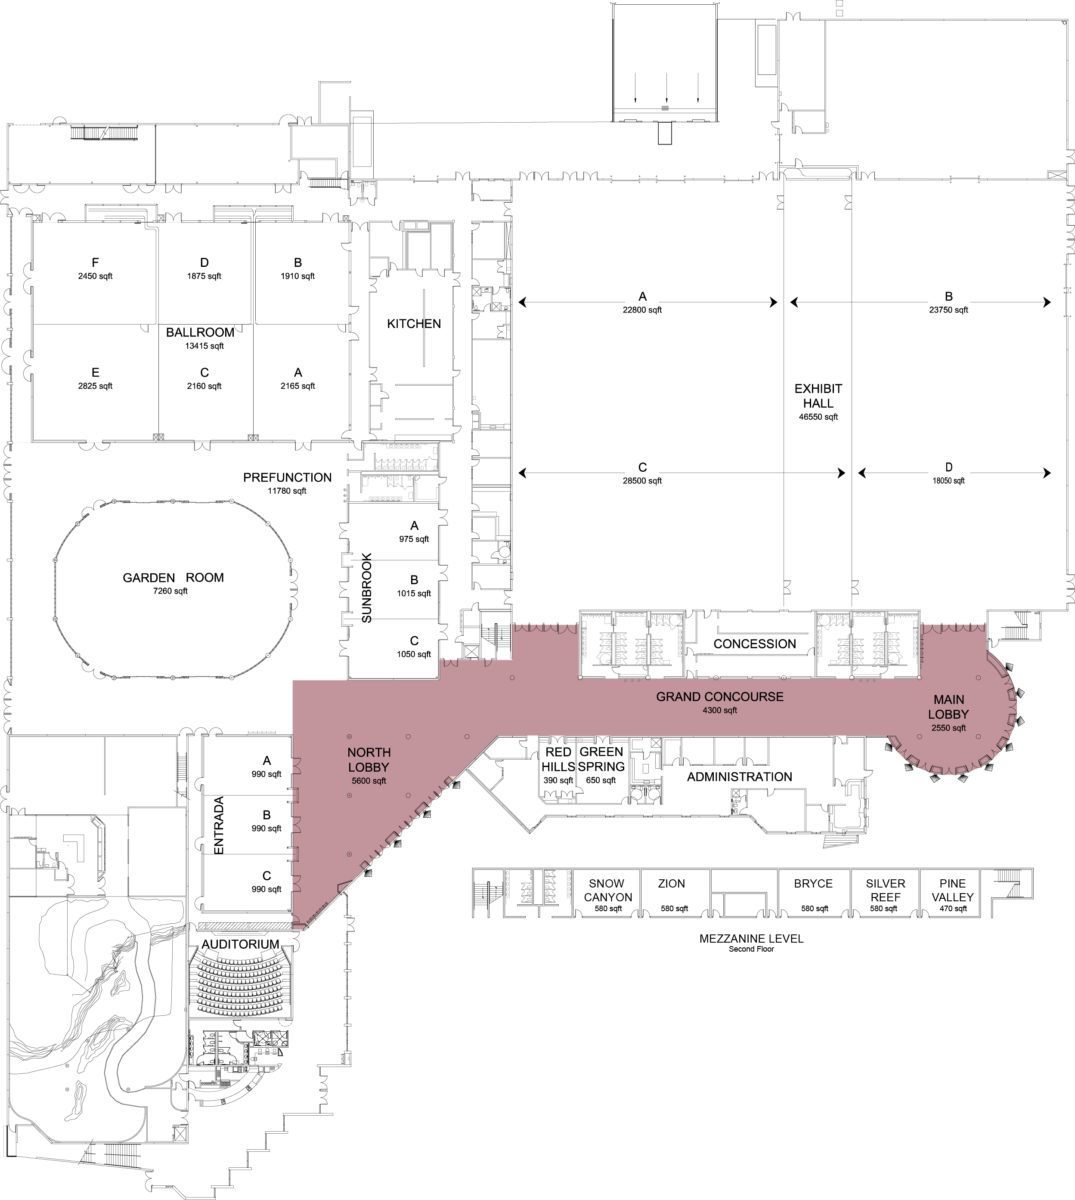 Floorplan of convention center with lobby highlighted